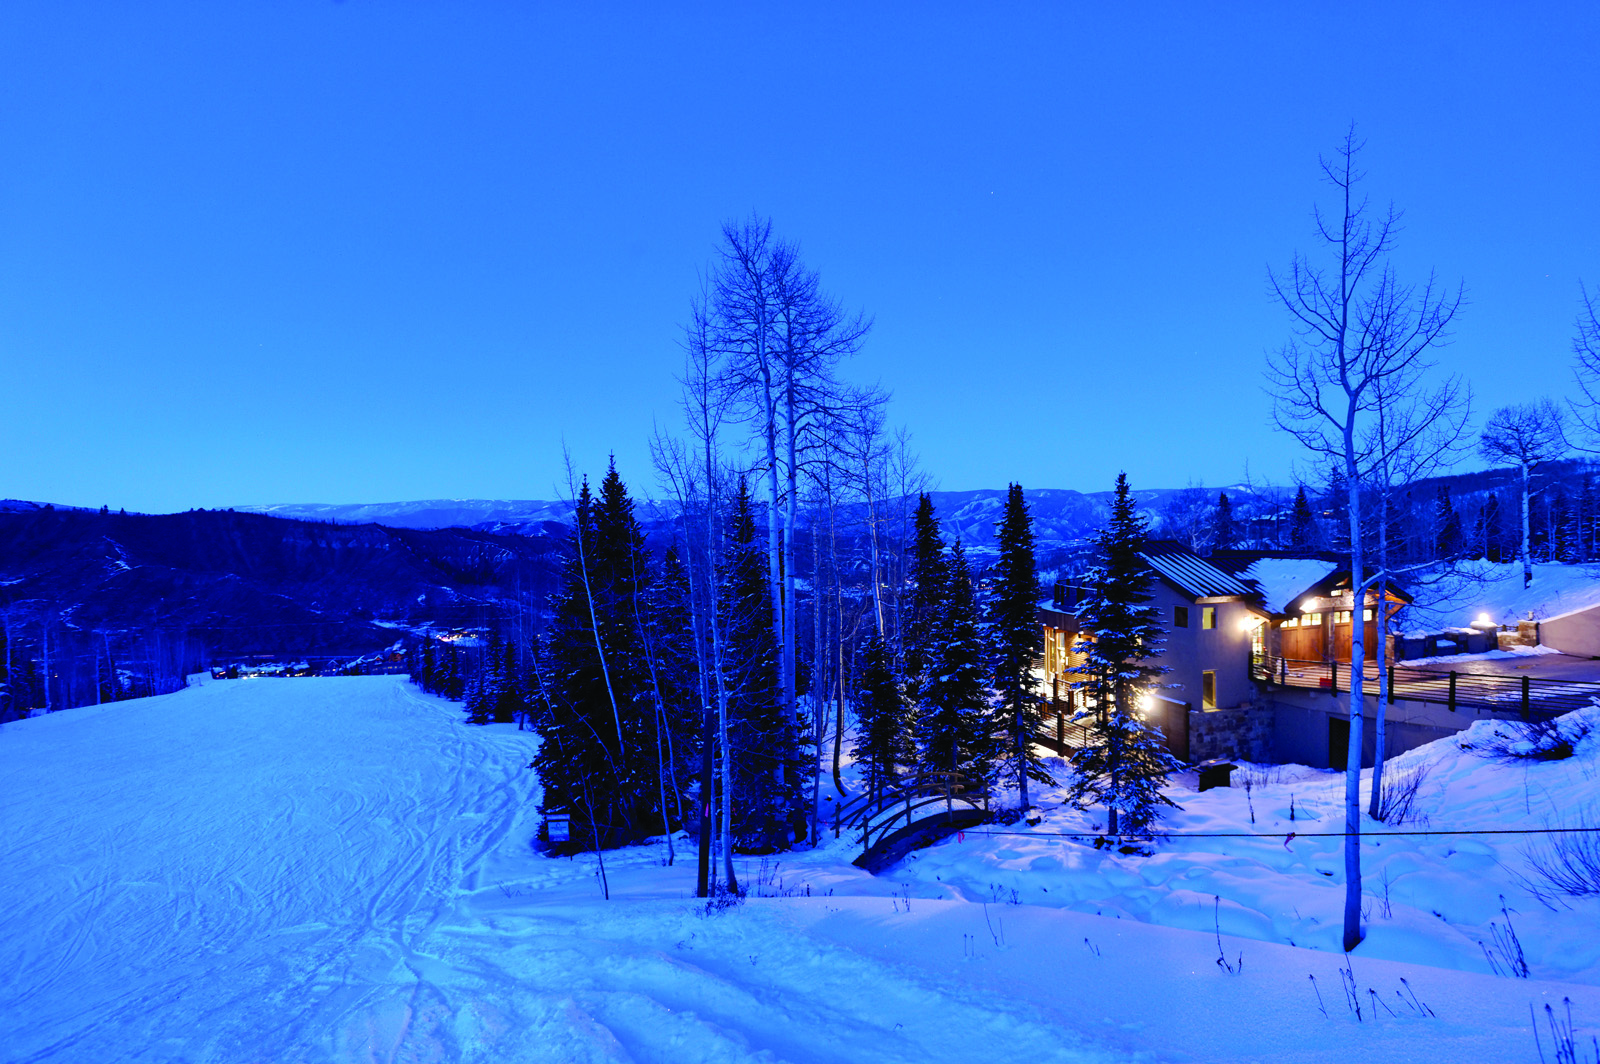 Single Family Home for Sale at The Ultimate Mountain Home 1457 Wood Rd Snowmass Village, Colorado 81615 United States